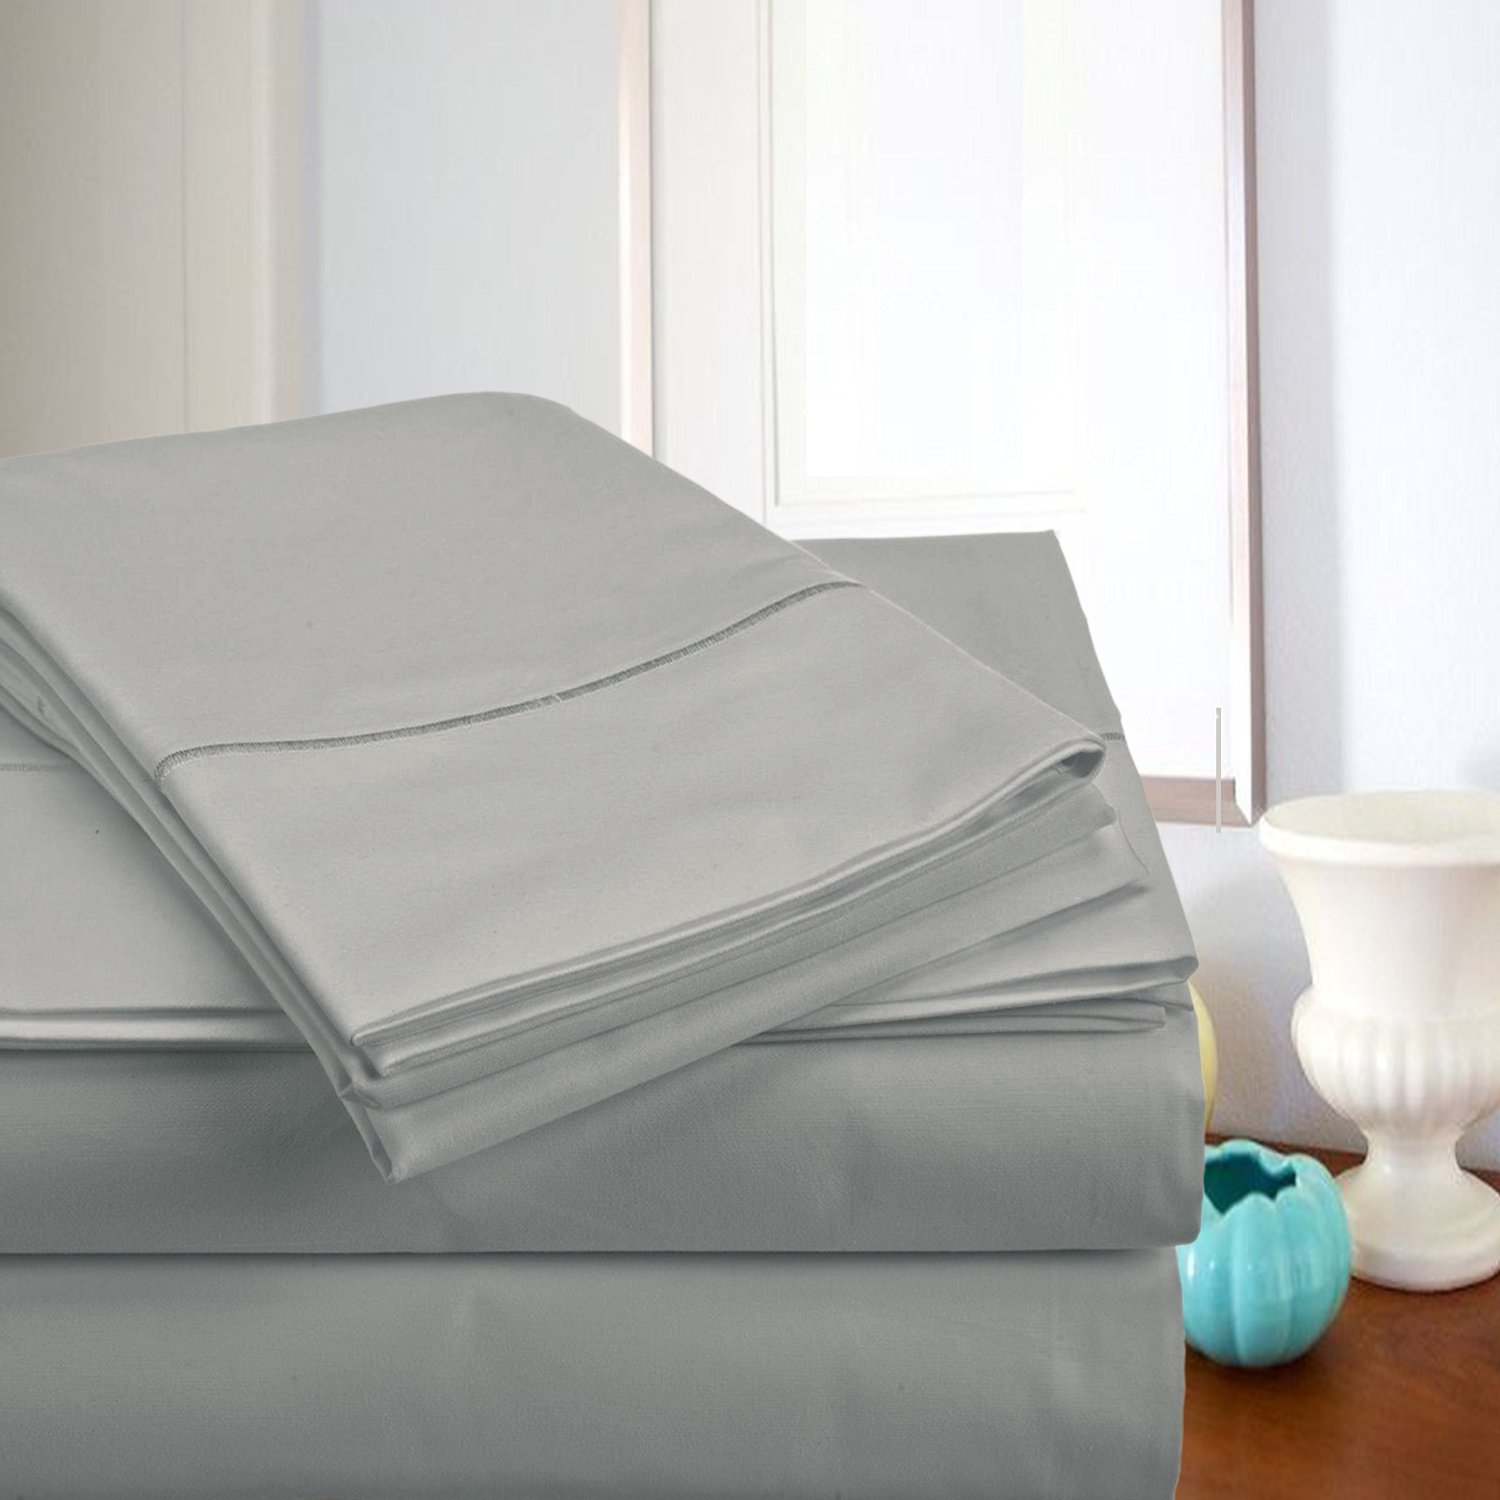 Top Sellers - MEGA SALE TODAY! #1 Rated Luxury Sheets On Amazon-Highest Quality! Luxury 800 Thread count 100% Egyptian Cotton Ultra Soft Super Combed Yarns 4 Piece Sheet Set, Queen - Silver